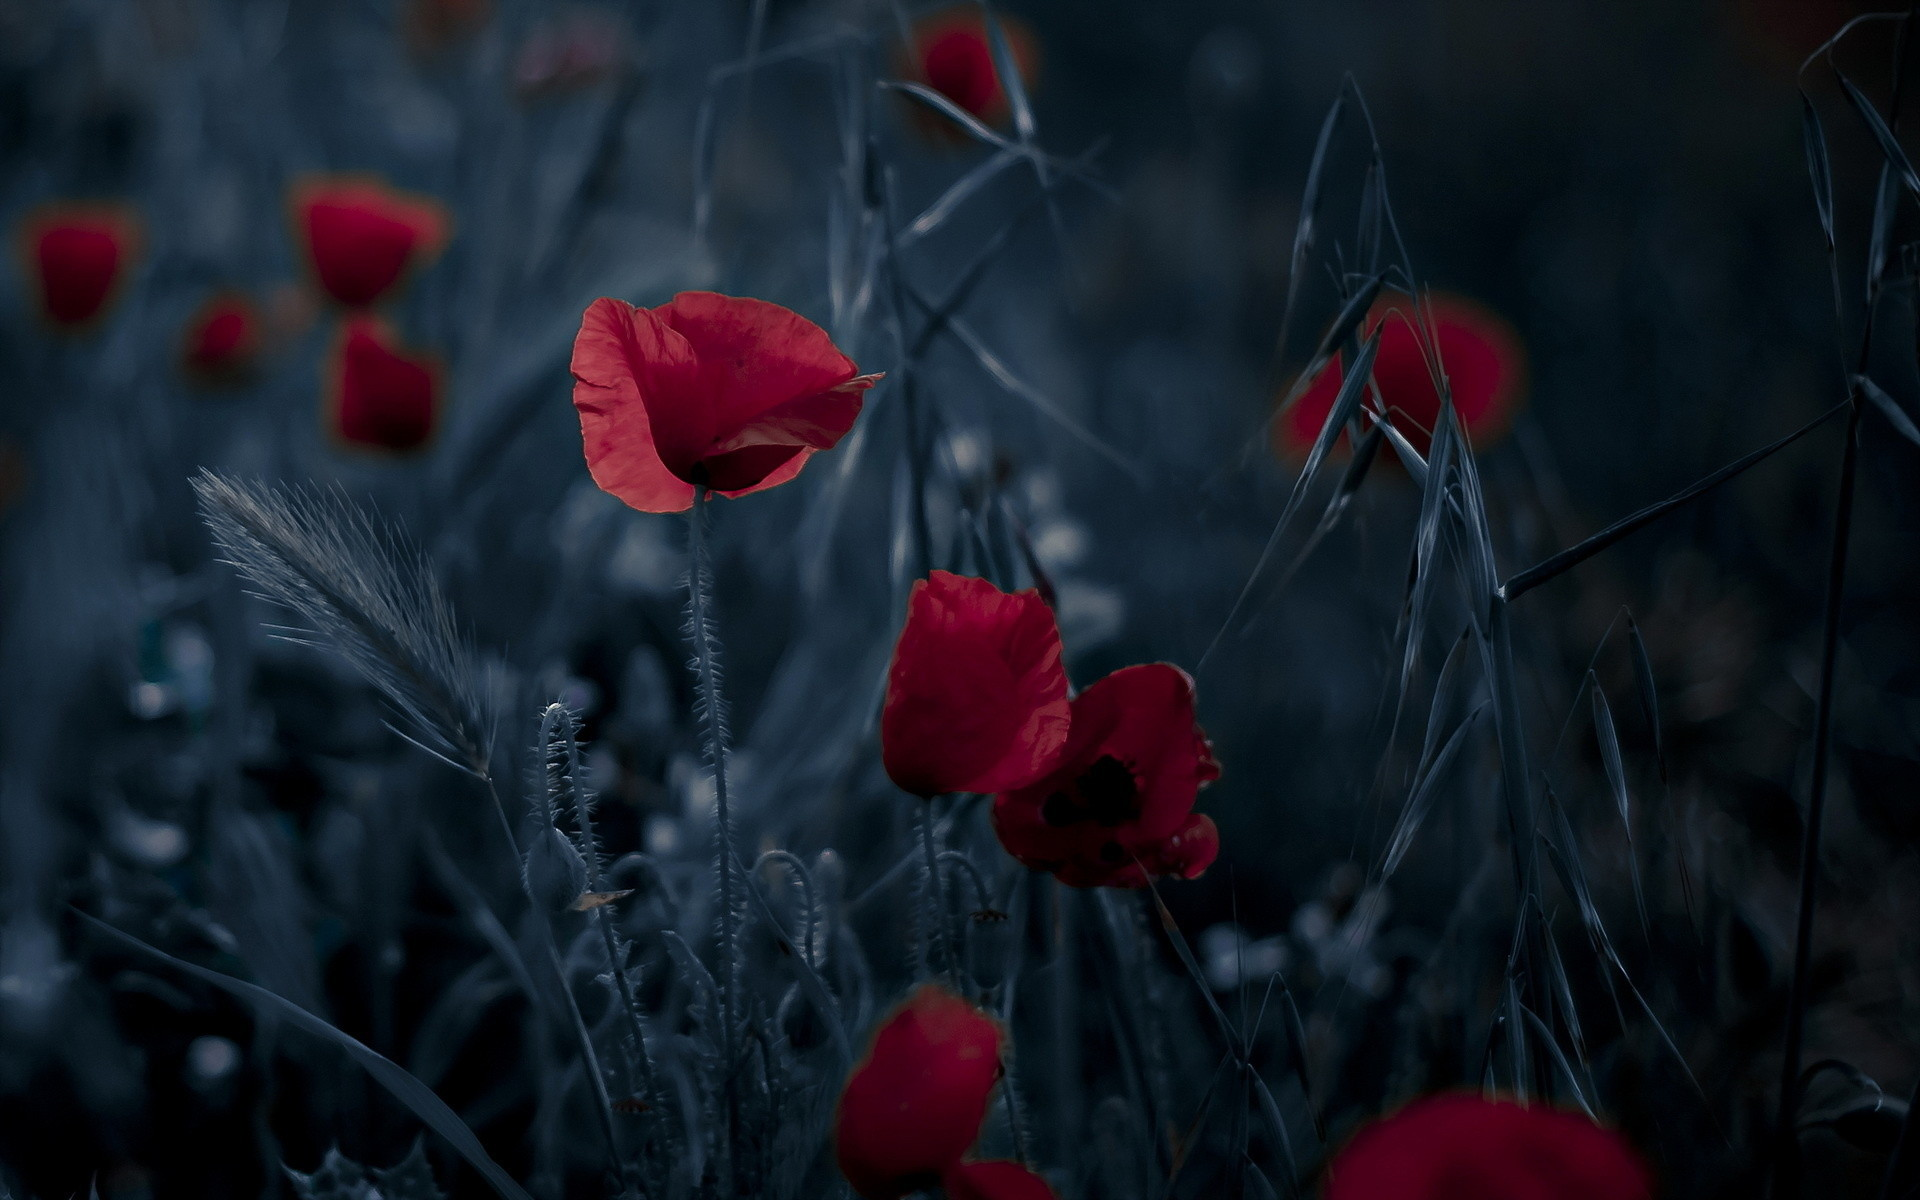 1920x1200 Poppy HD Wallpaper | Background Image |  | ID:430496 - Wallpaper  Abyss